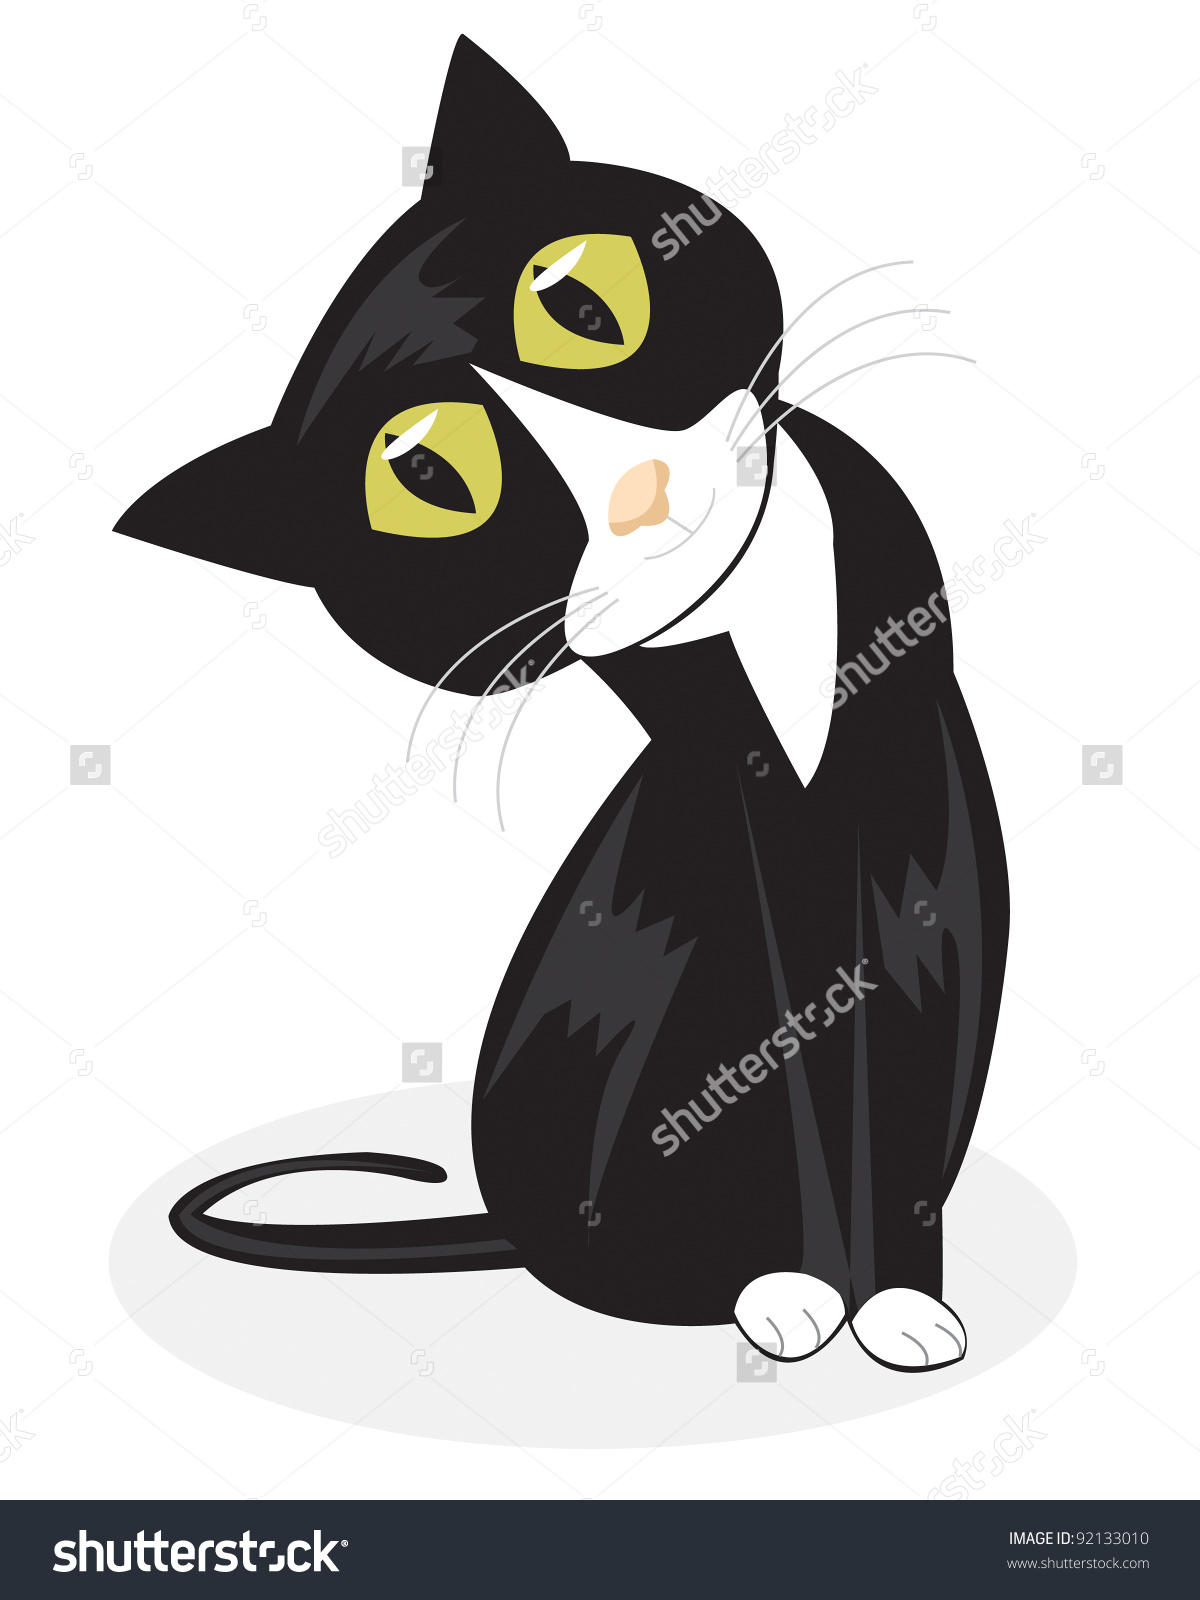 Tuxedo Cat clipart #10, Download drawings